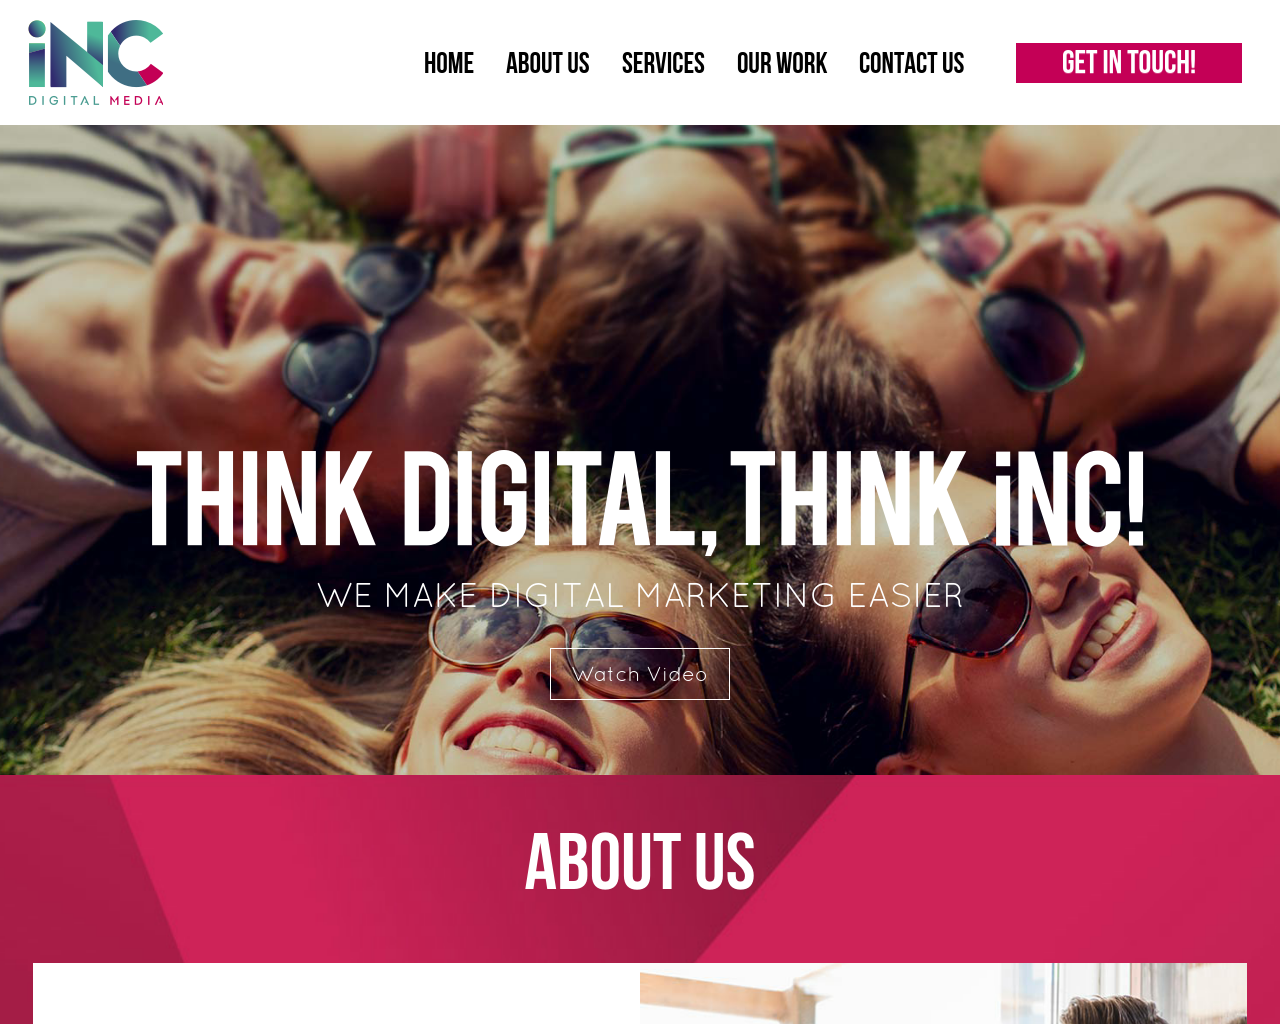 INC-DIGITAL-MEDIA-Advertising-Reviews-Pricing